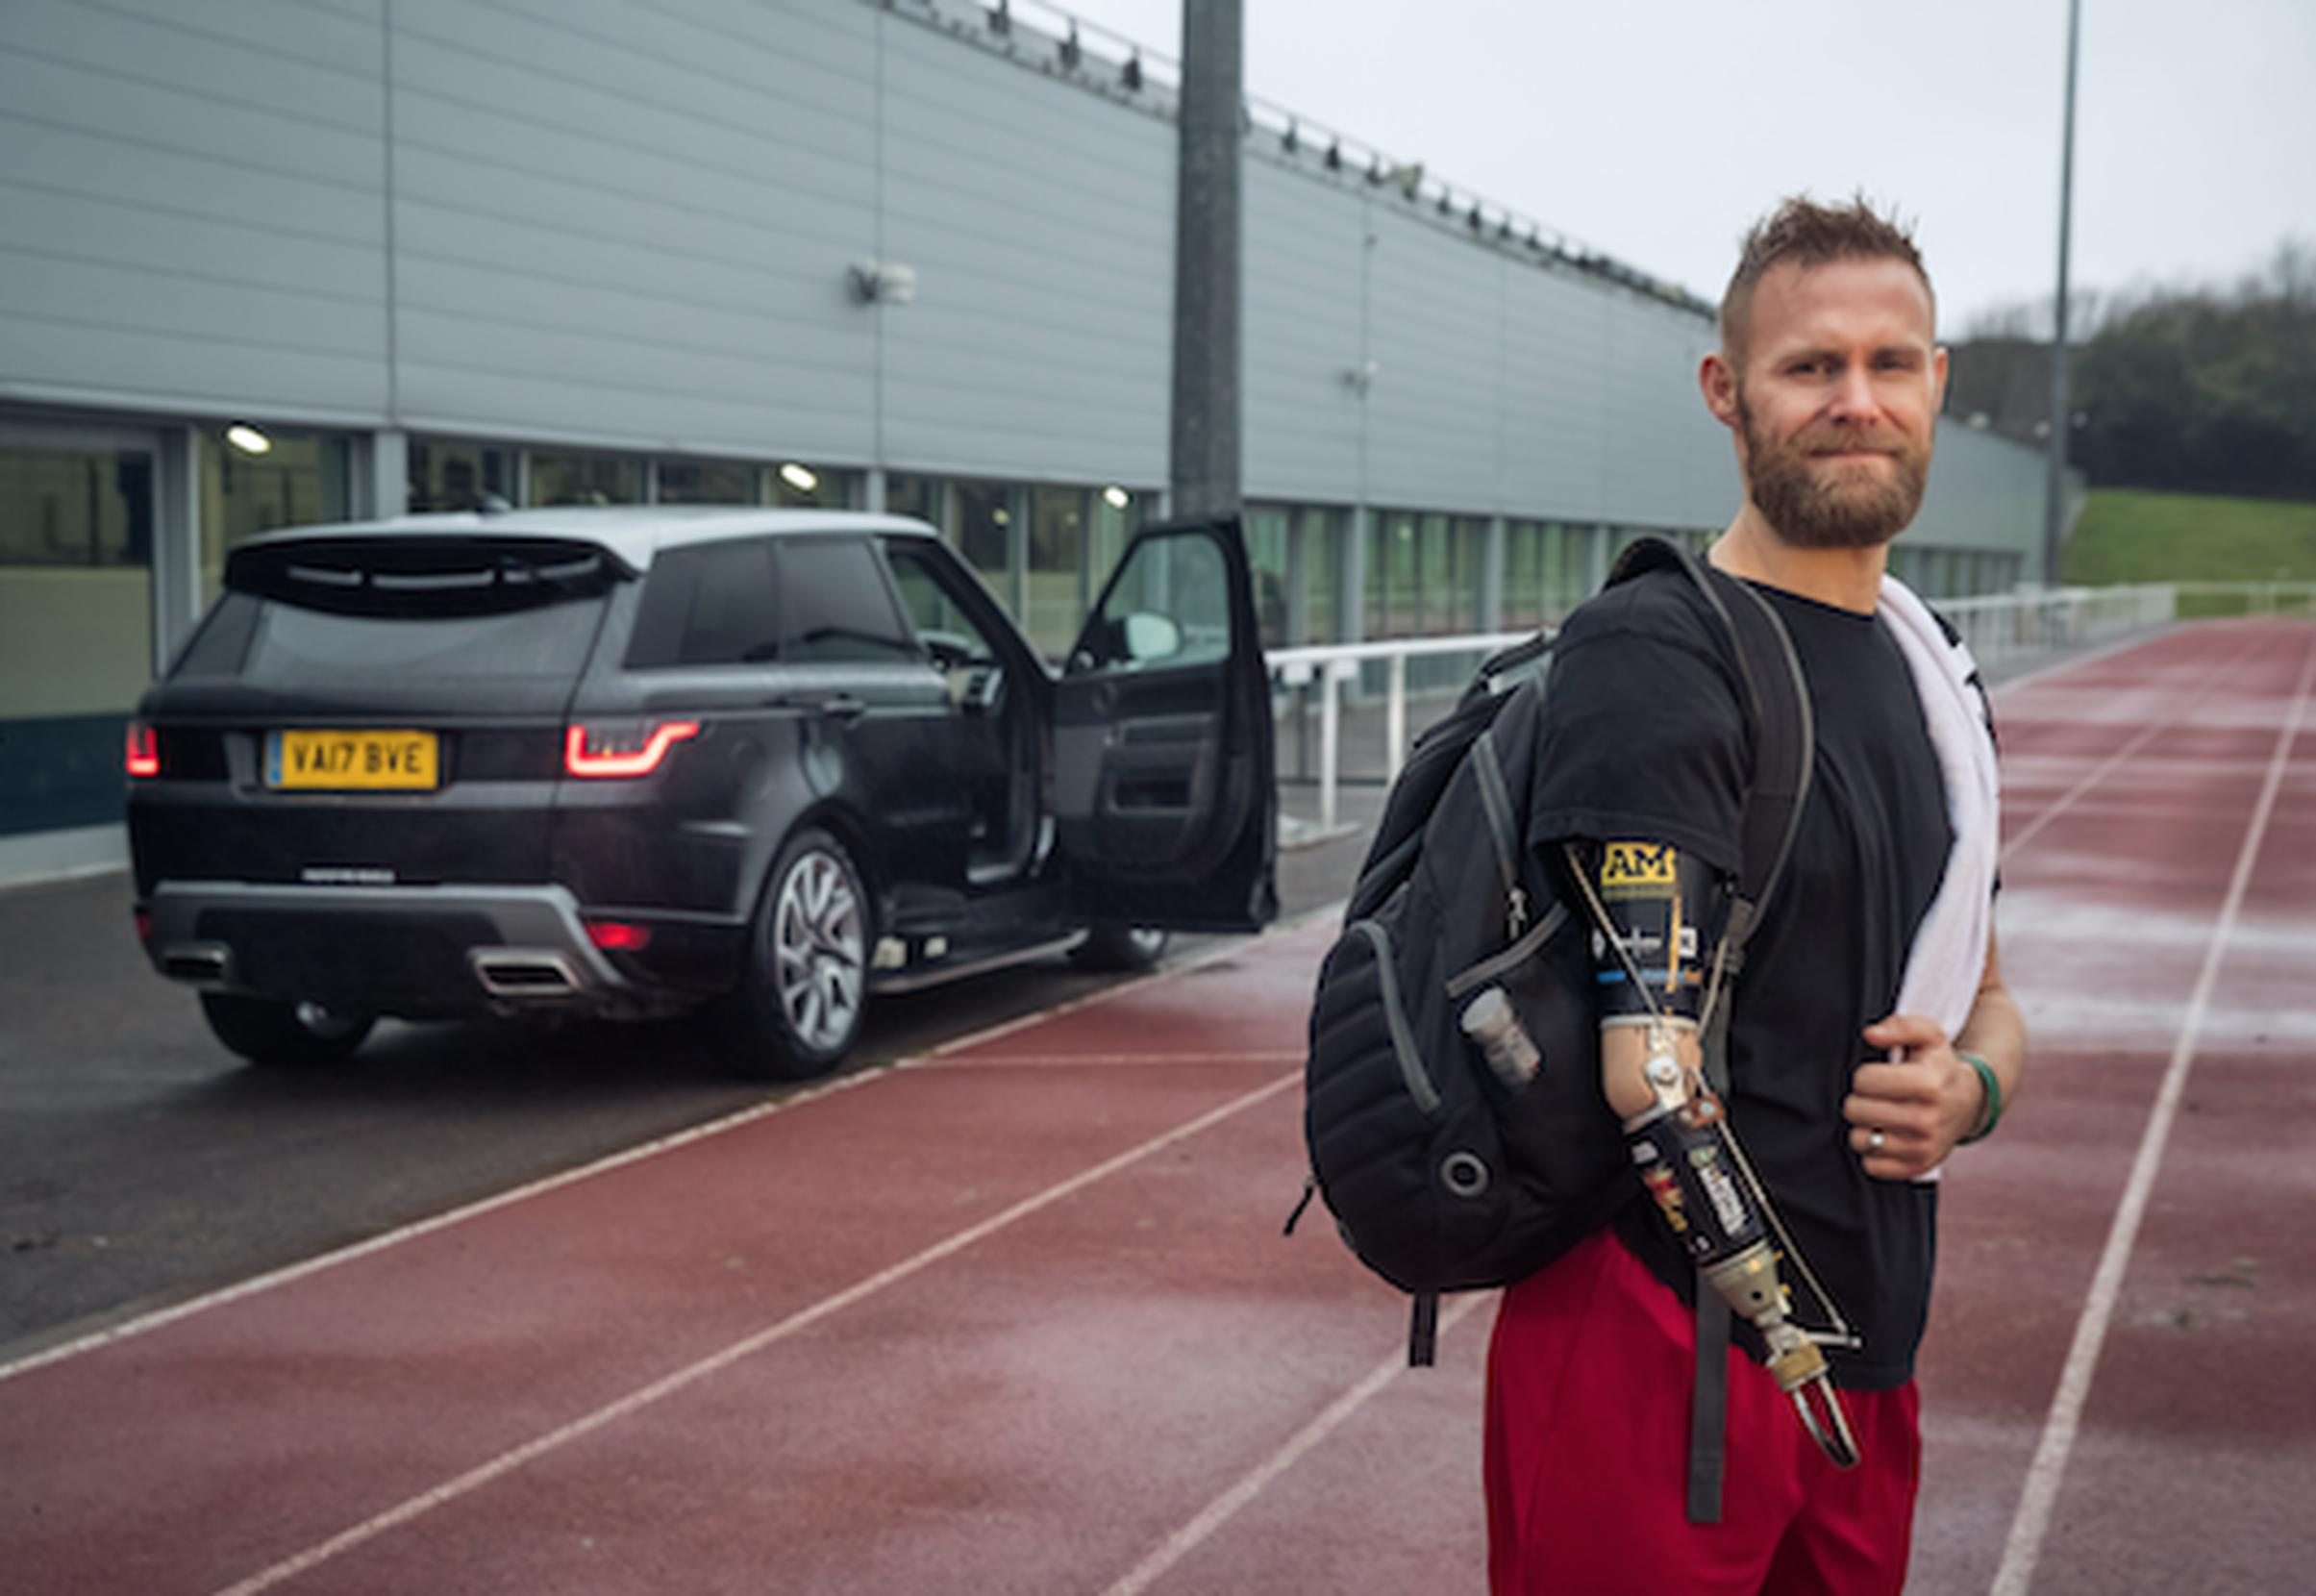 Former Royal Marine Commando Mark Ormrod has been testing a Range Rove Sport equipped with the mobility door